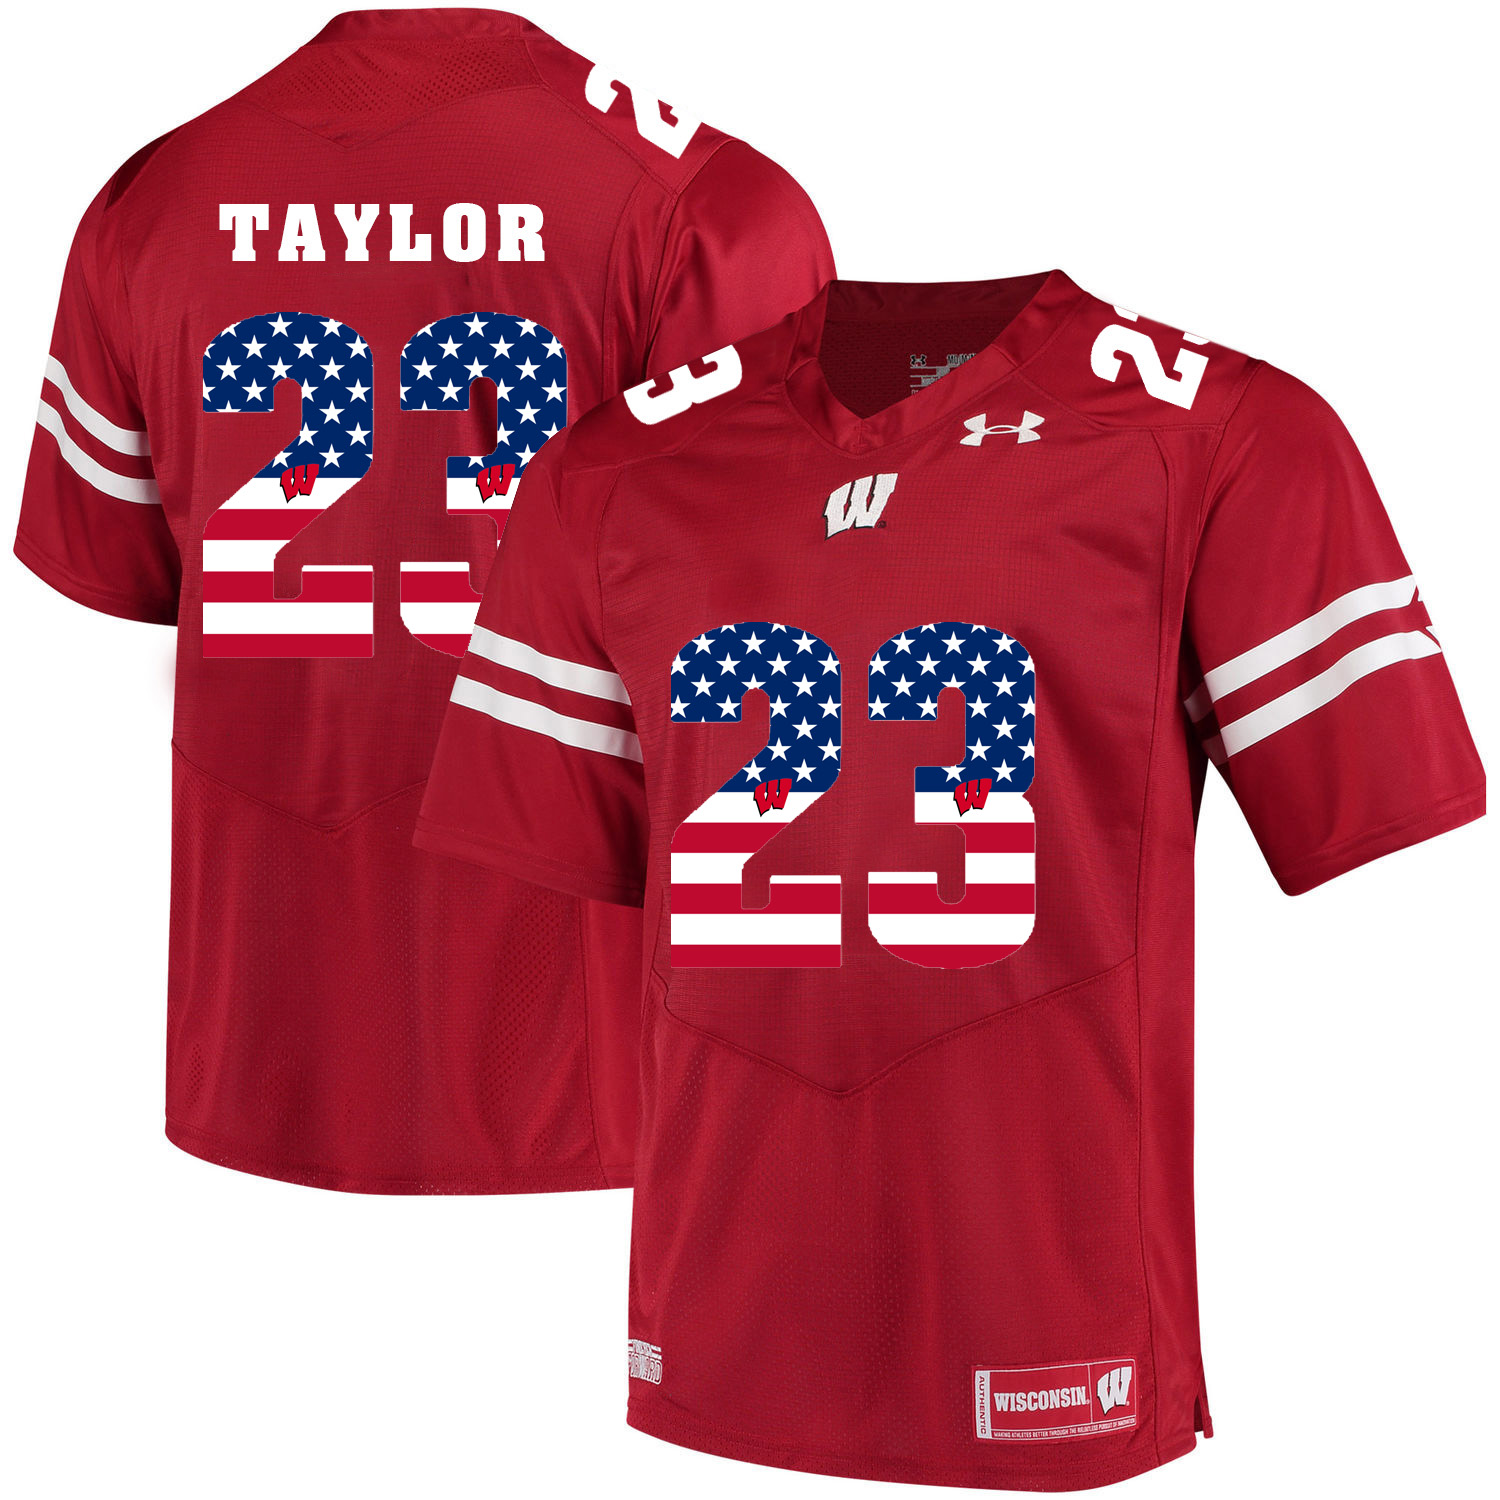 Wisconsin Badgers 23 Jonathan Taylor Red USA Flag College Football Jersey